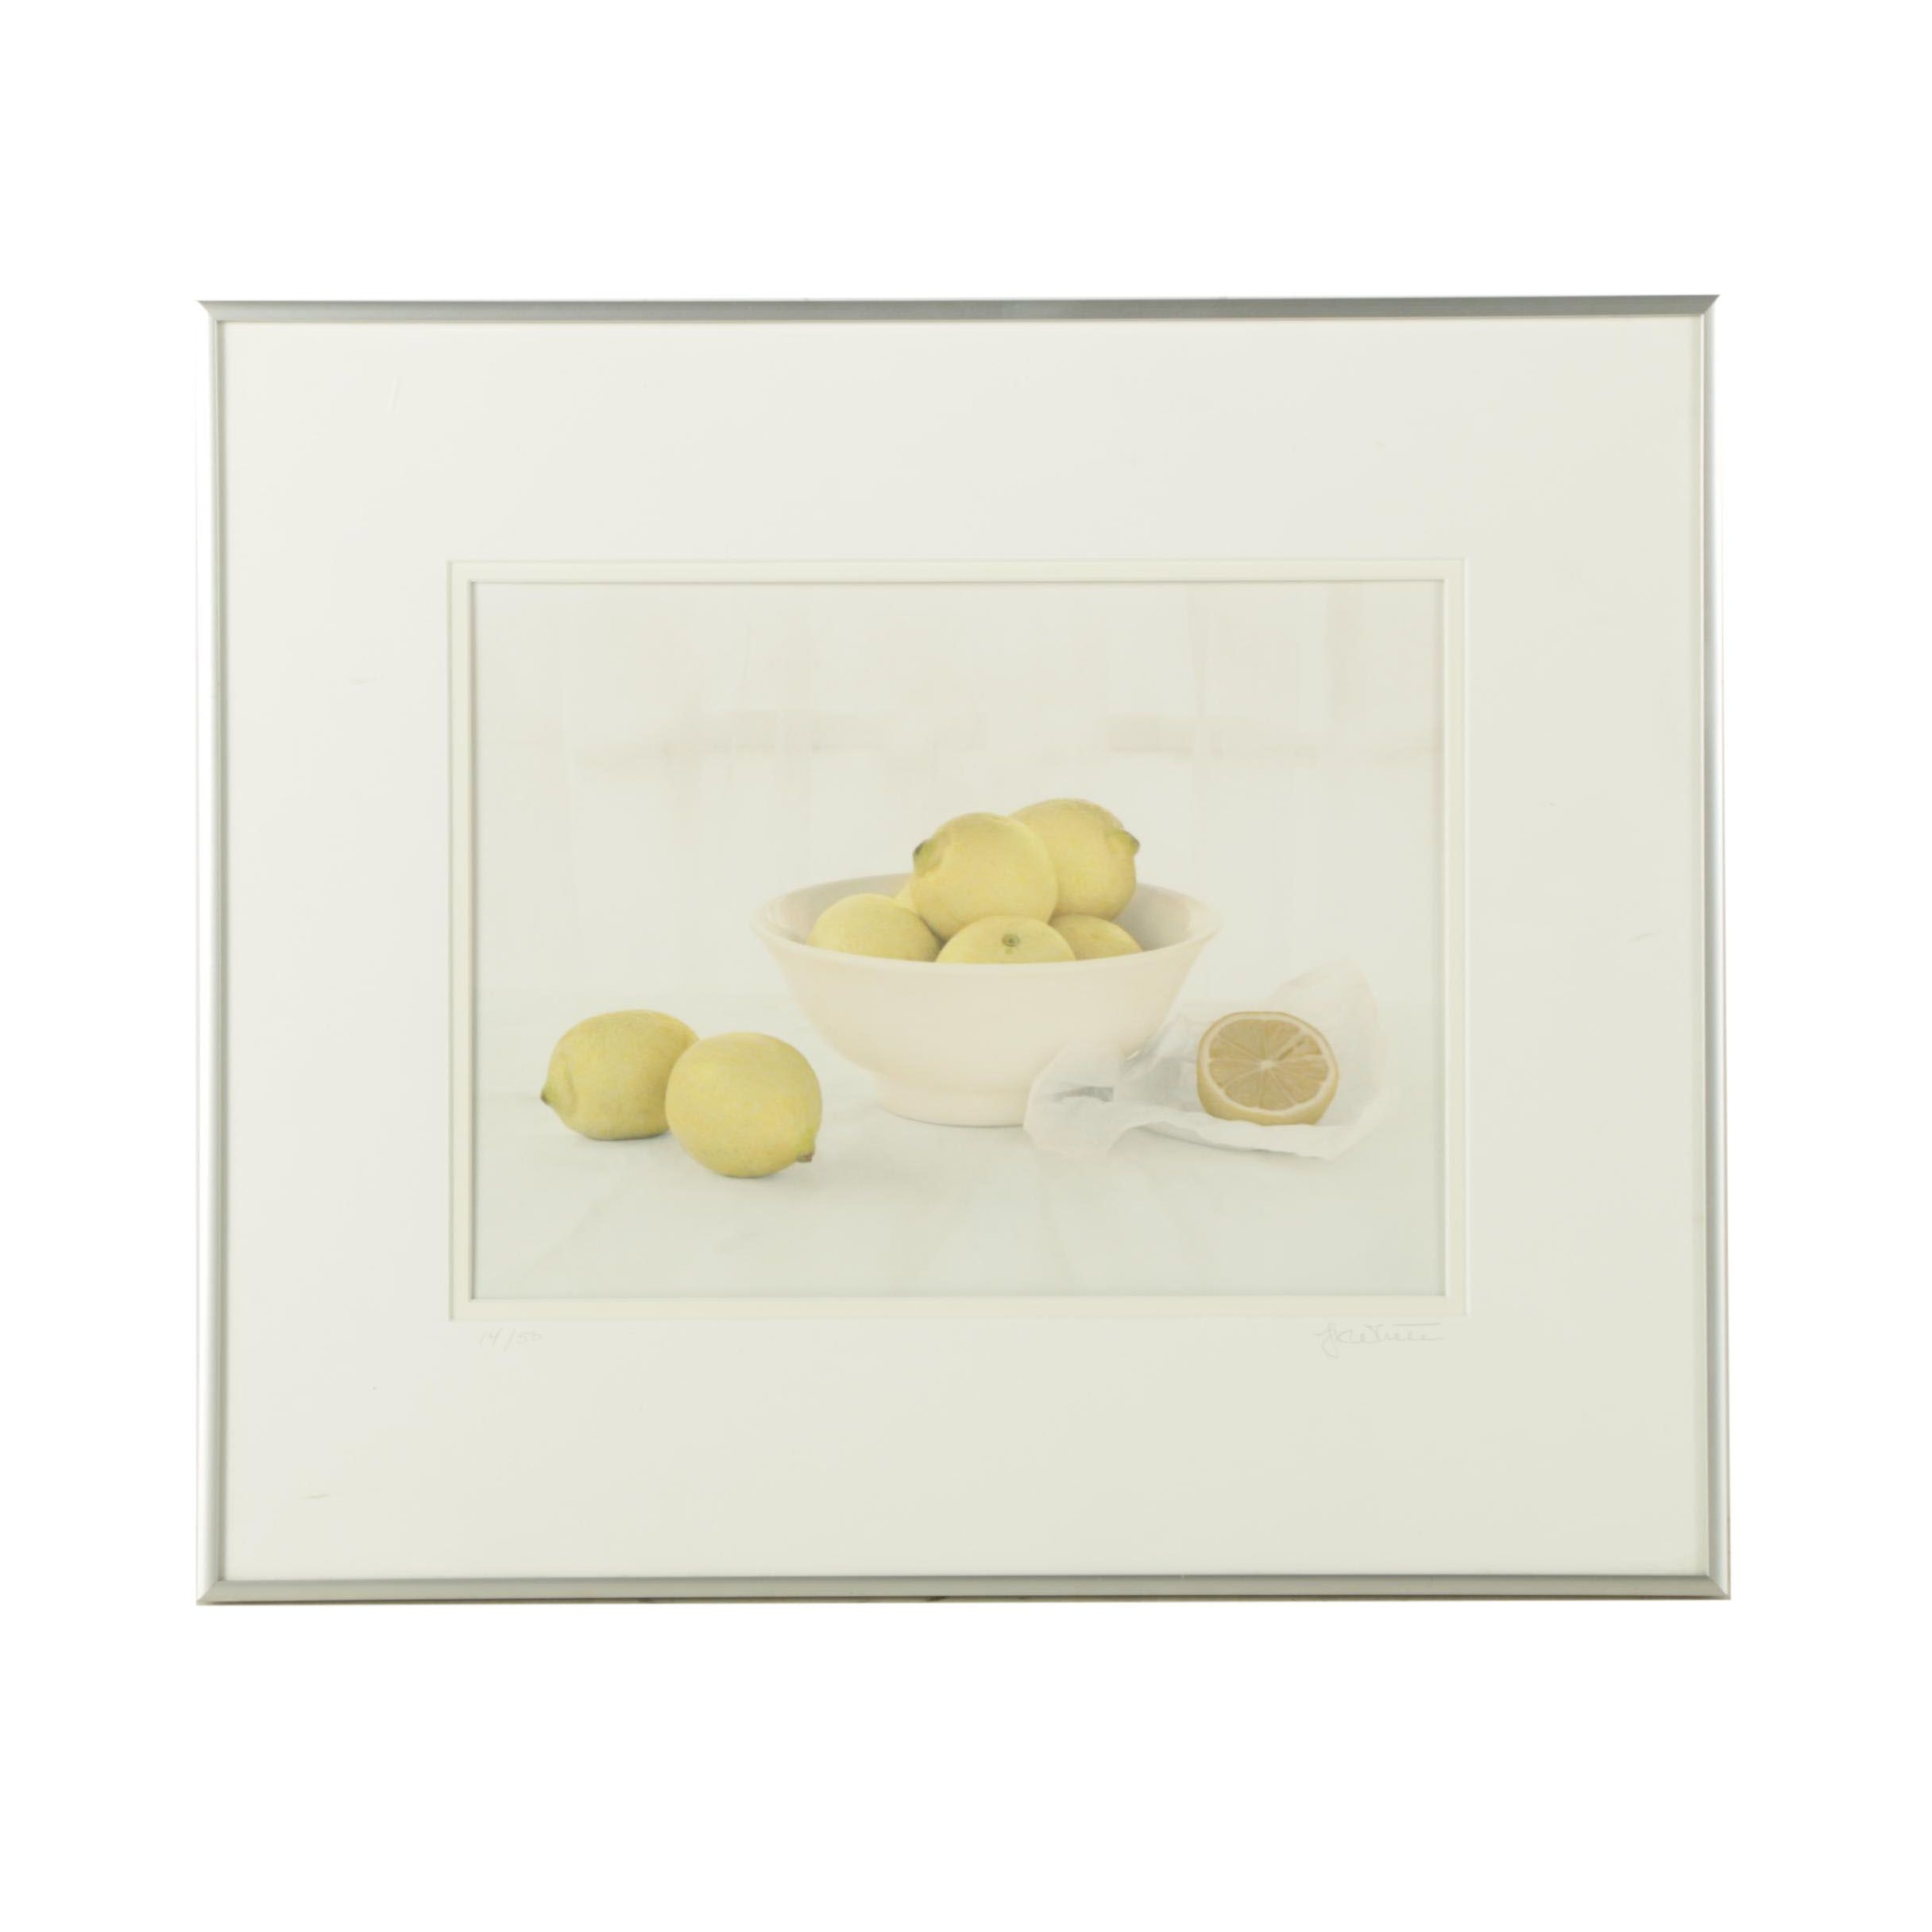 "Kevin White Limited Edition Hand-Colored Photograph ""Lemons, Hope Marie"""